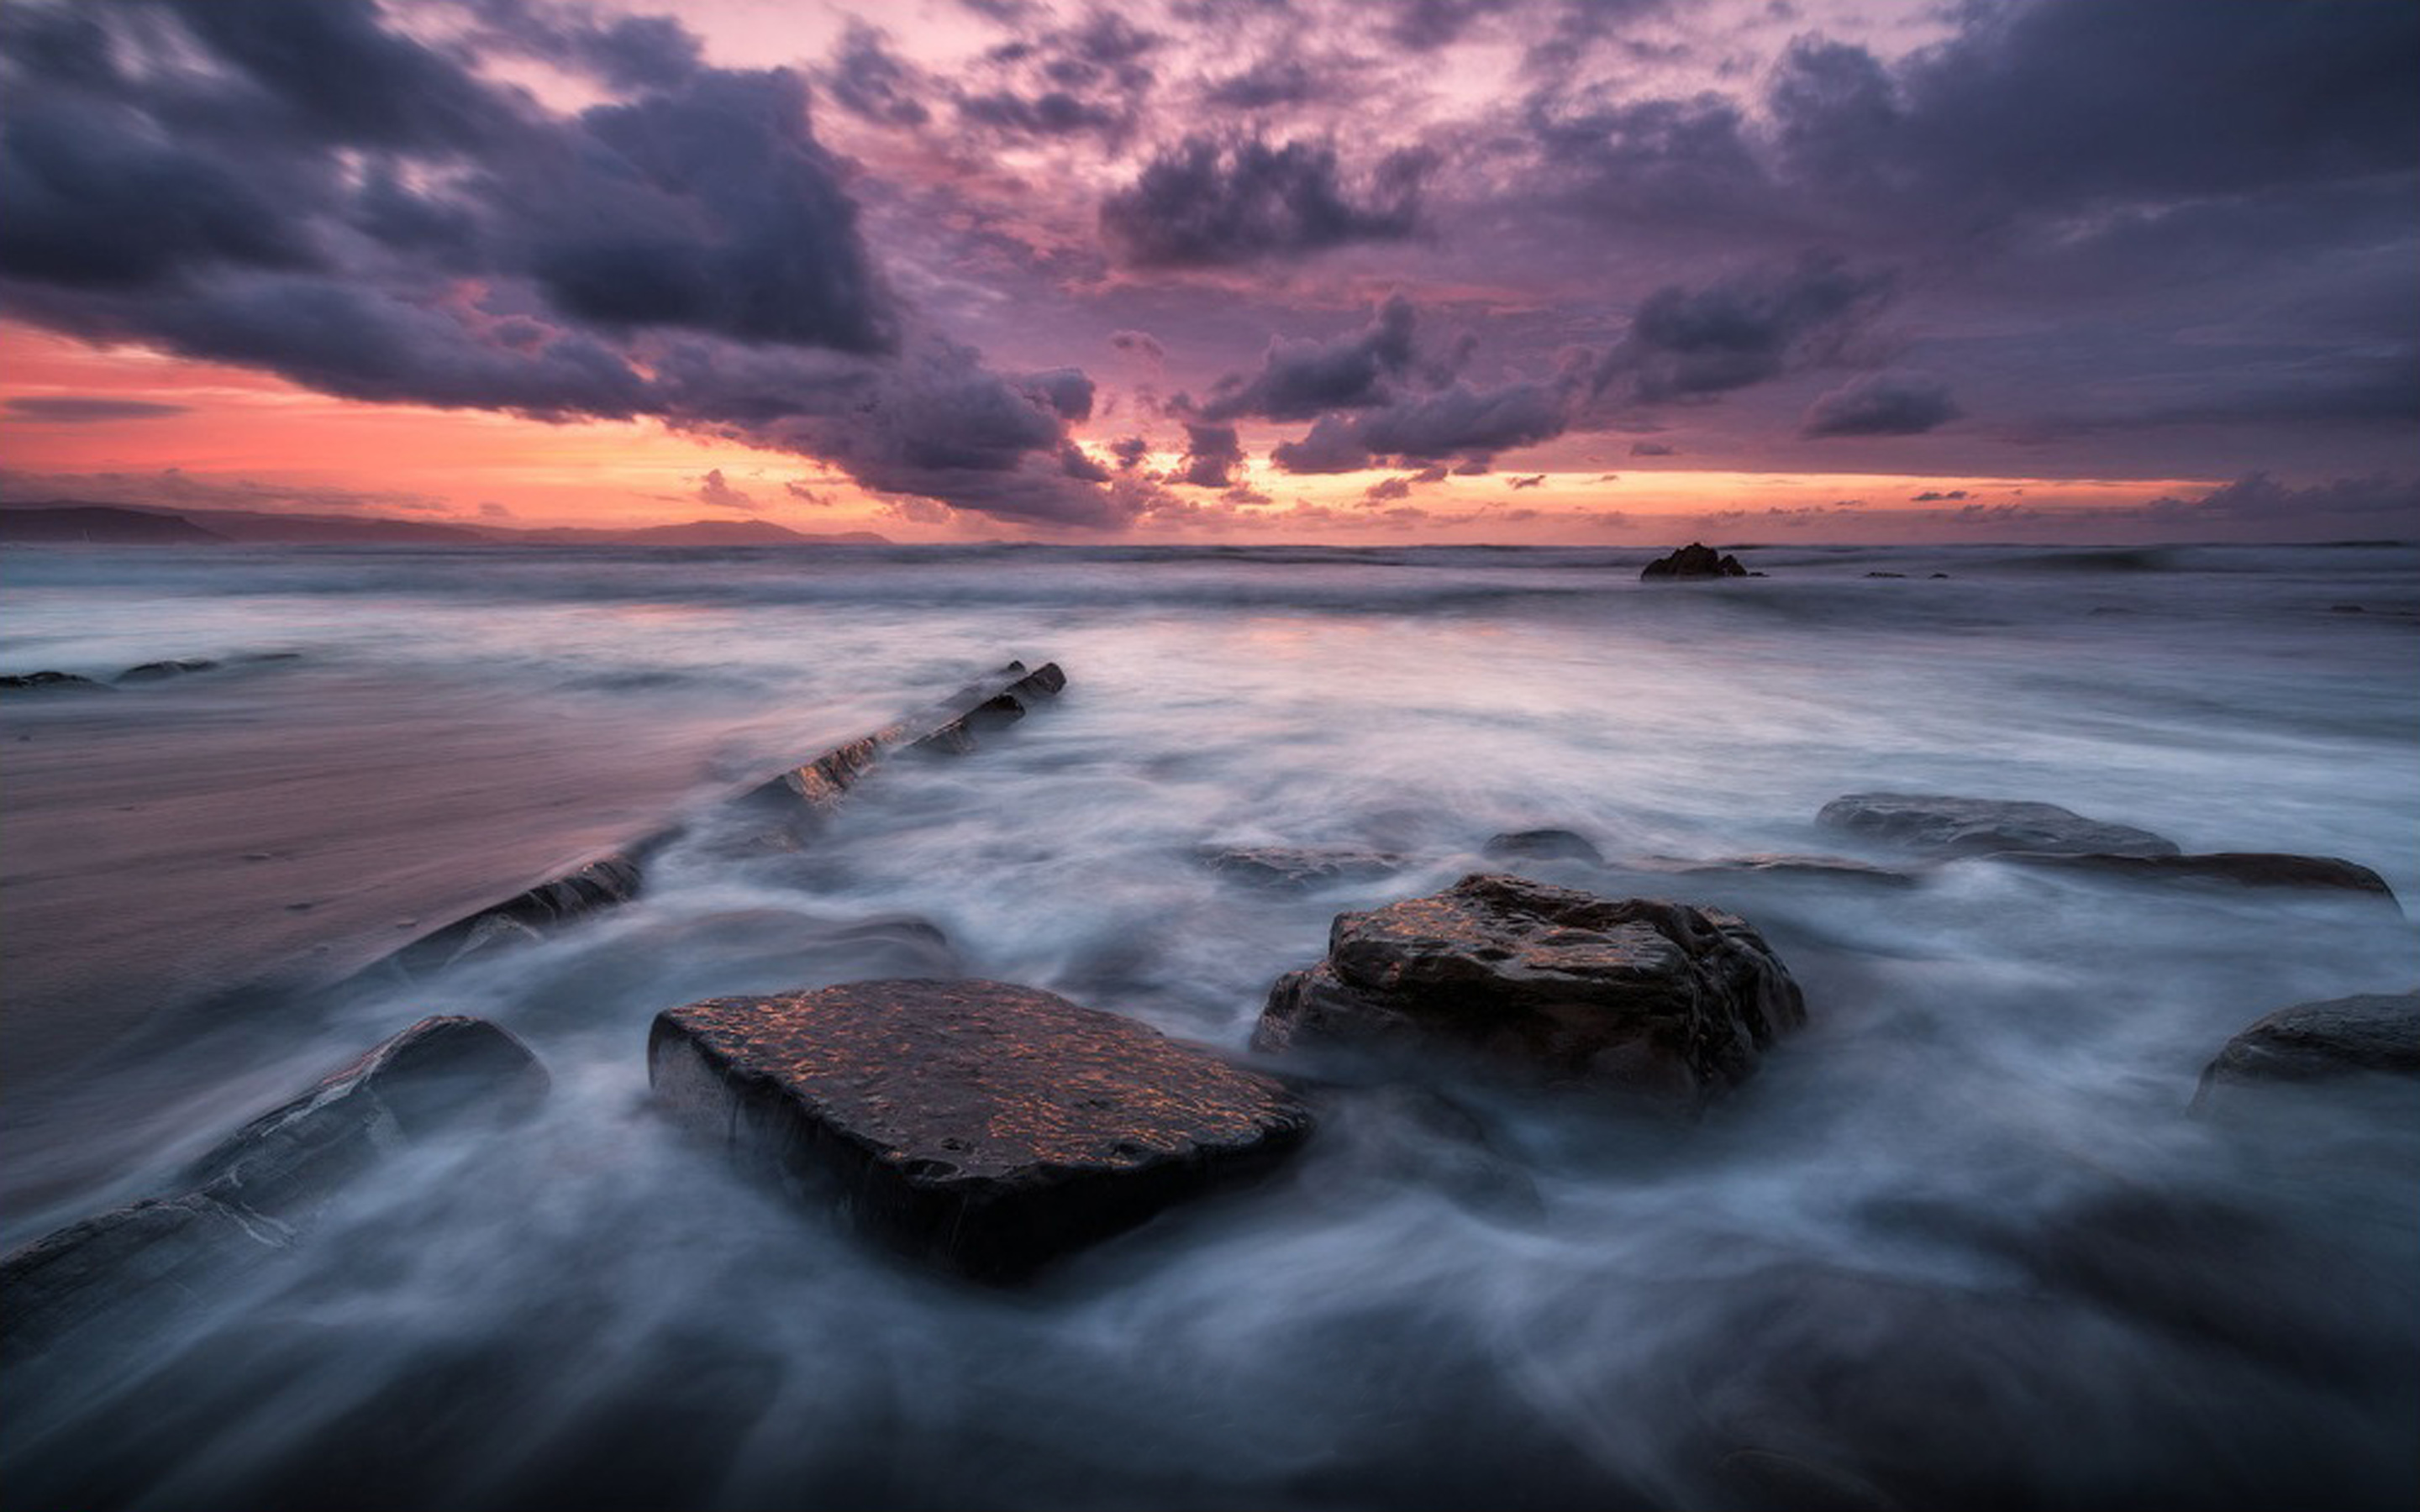 Sea Coast With Rocks Waves Dark Sky With Clouds Red